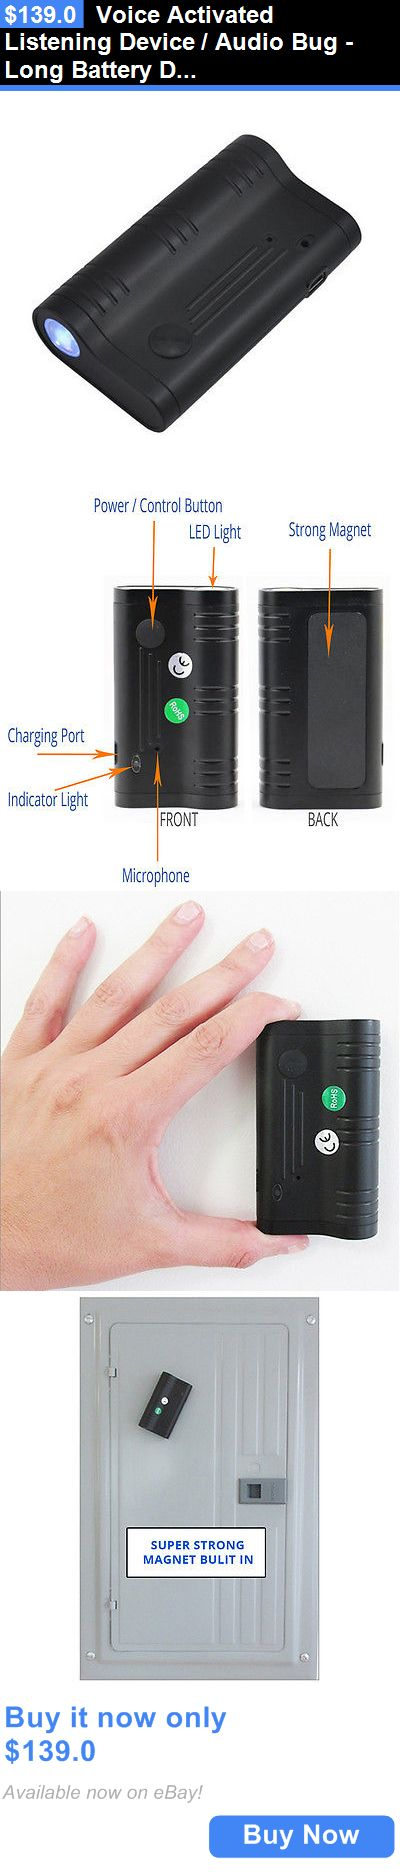 Voice Recorders Dictaphones: Voice Activated Listening Device / Audio Bug -Long Battery Digital Spy Recorder BUY IT NOW ONLY: $139.0